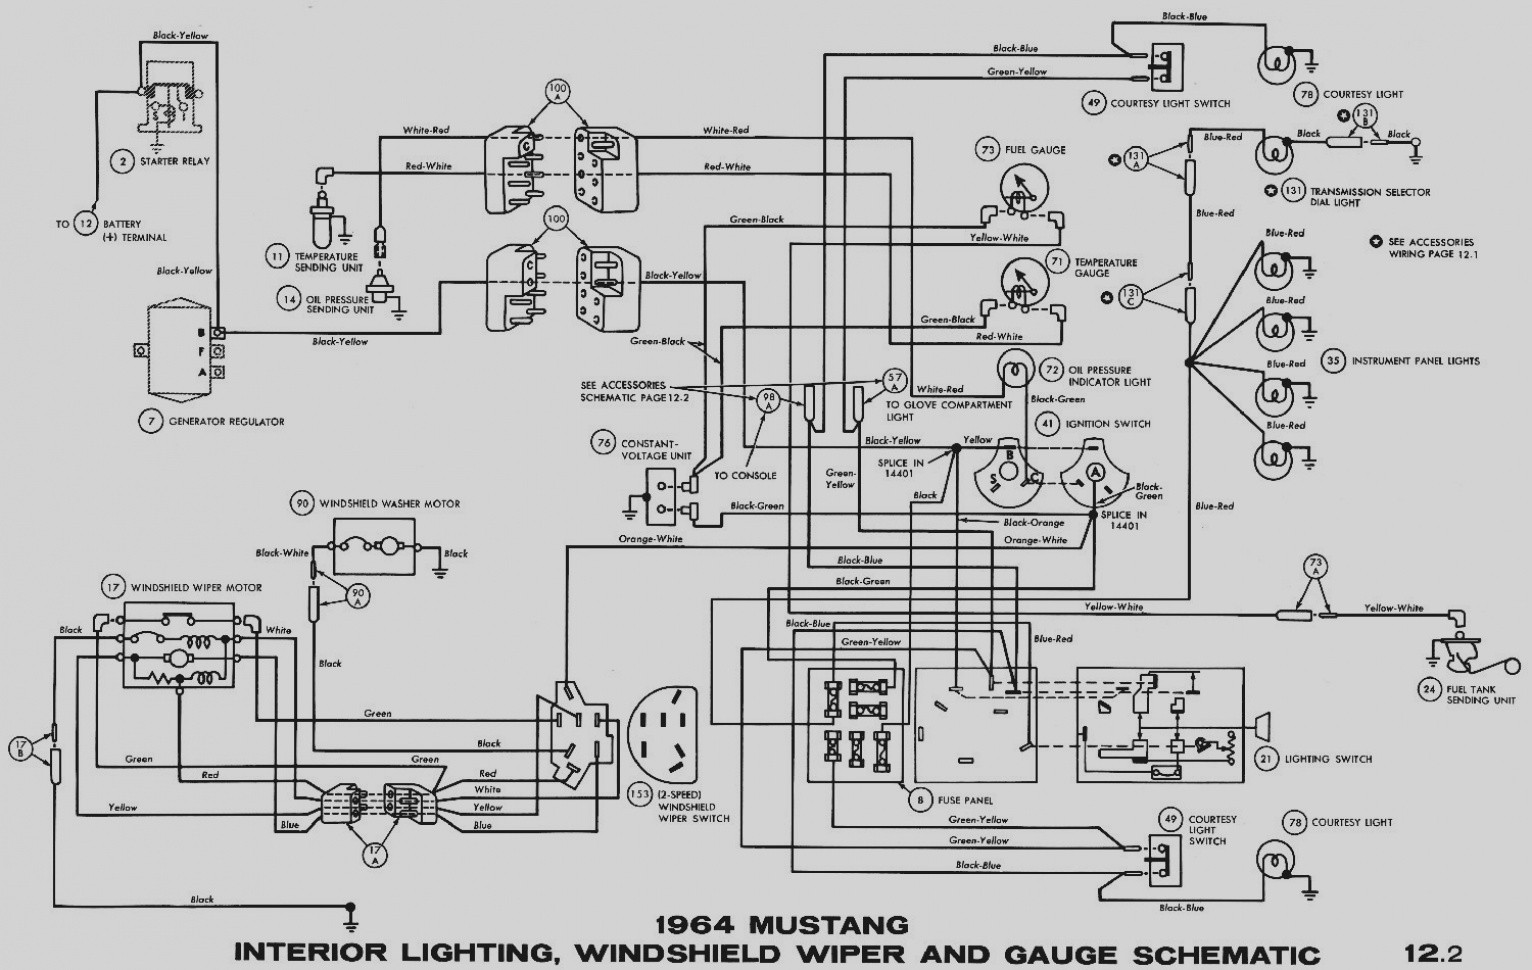 1964 Mustang Tail Light Wiring Diagram Just Another Data 1950 Chevy Simple 1965 Console